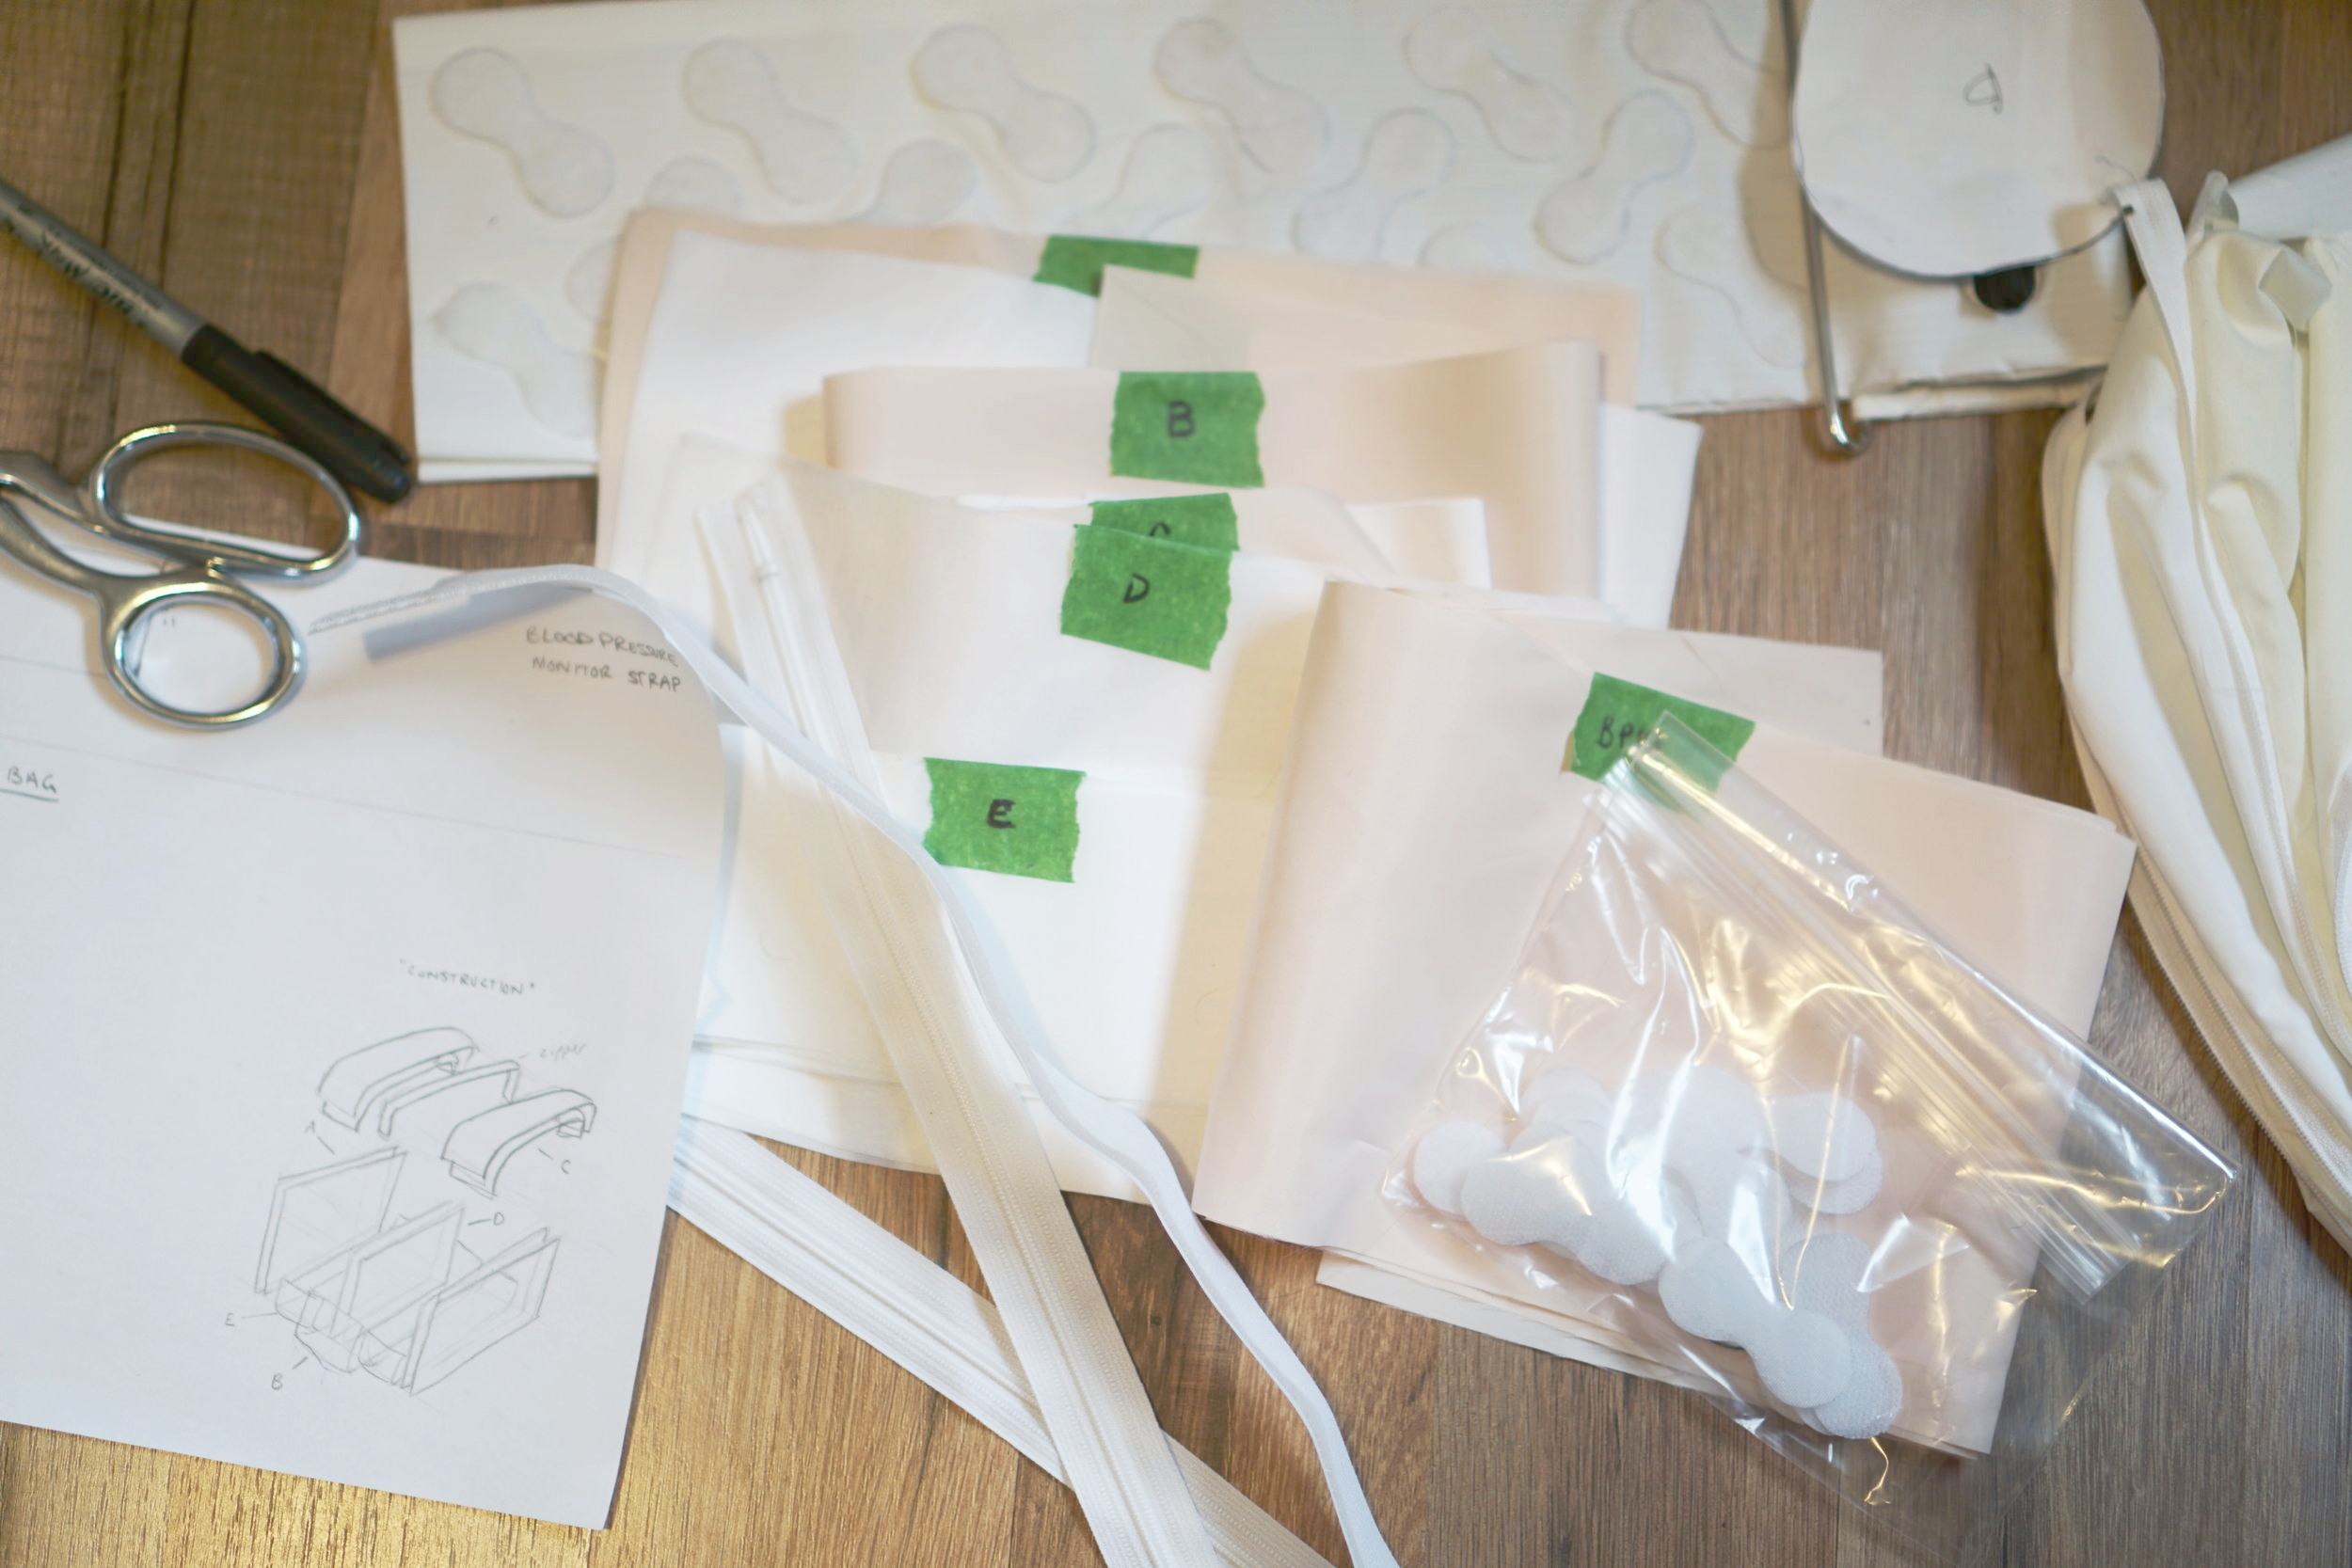 Construction plans and components being organized for the production of the bag soft prototype.